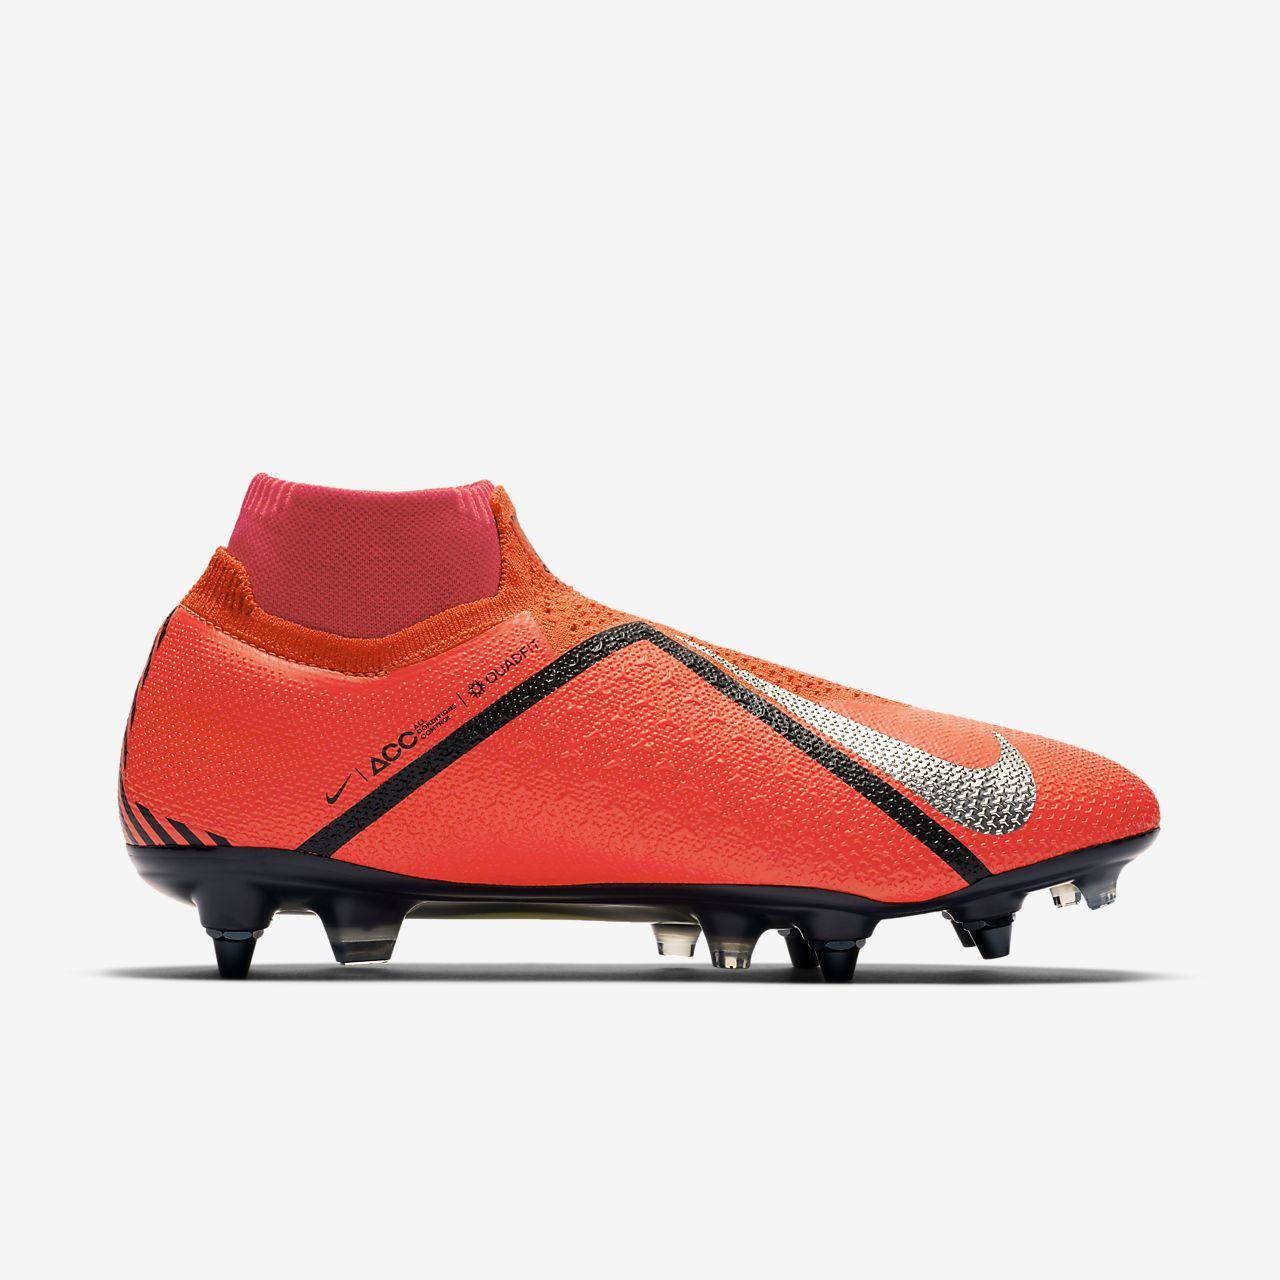 low priced de9b2 70ef9 ... Nike Phantom Vision Elite Dynamic Fit Anti-Clog SG-PRO Football Boot